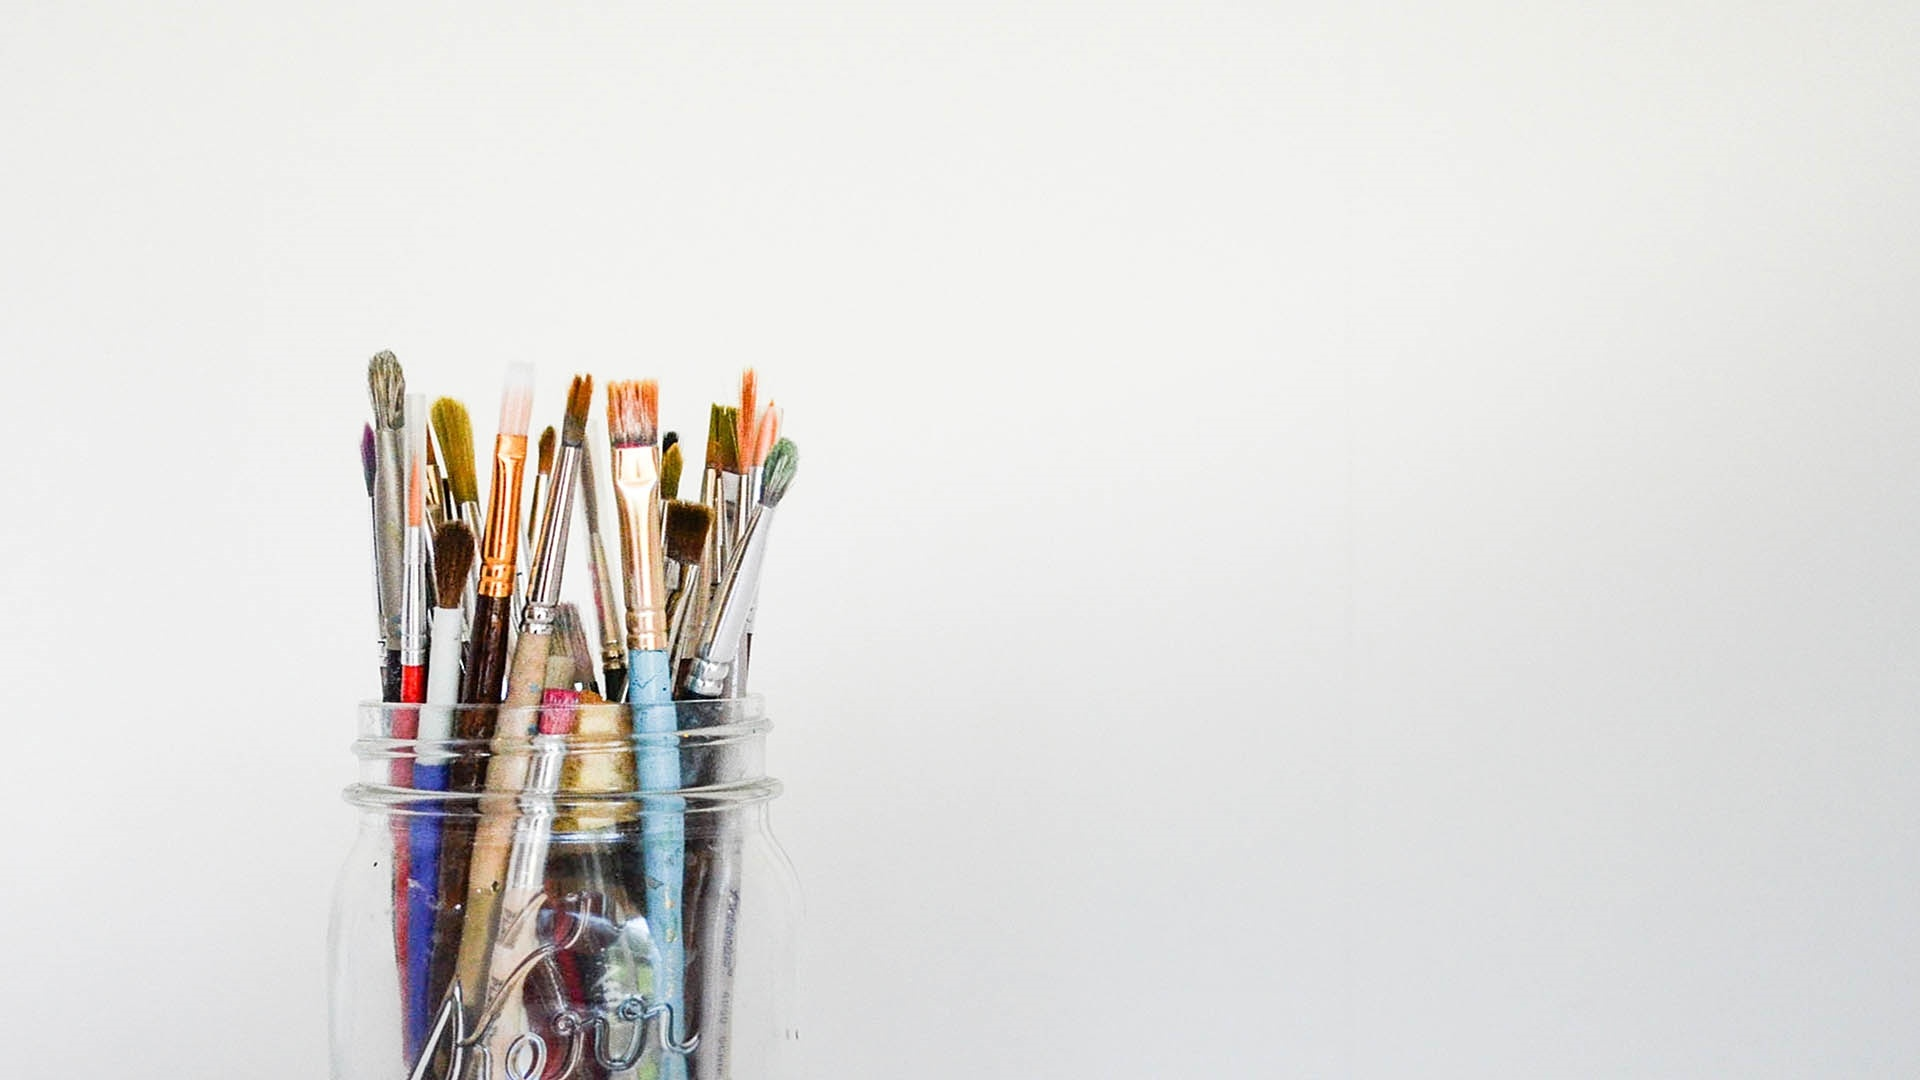 Brushes And Paint wallpaper for pc